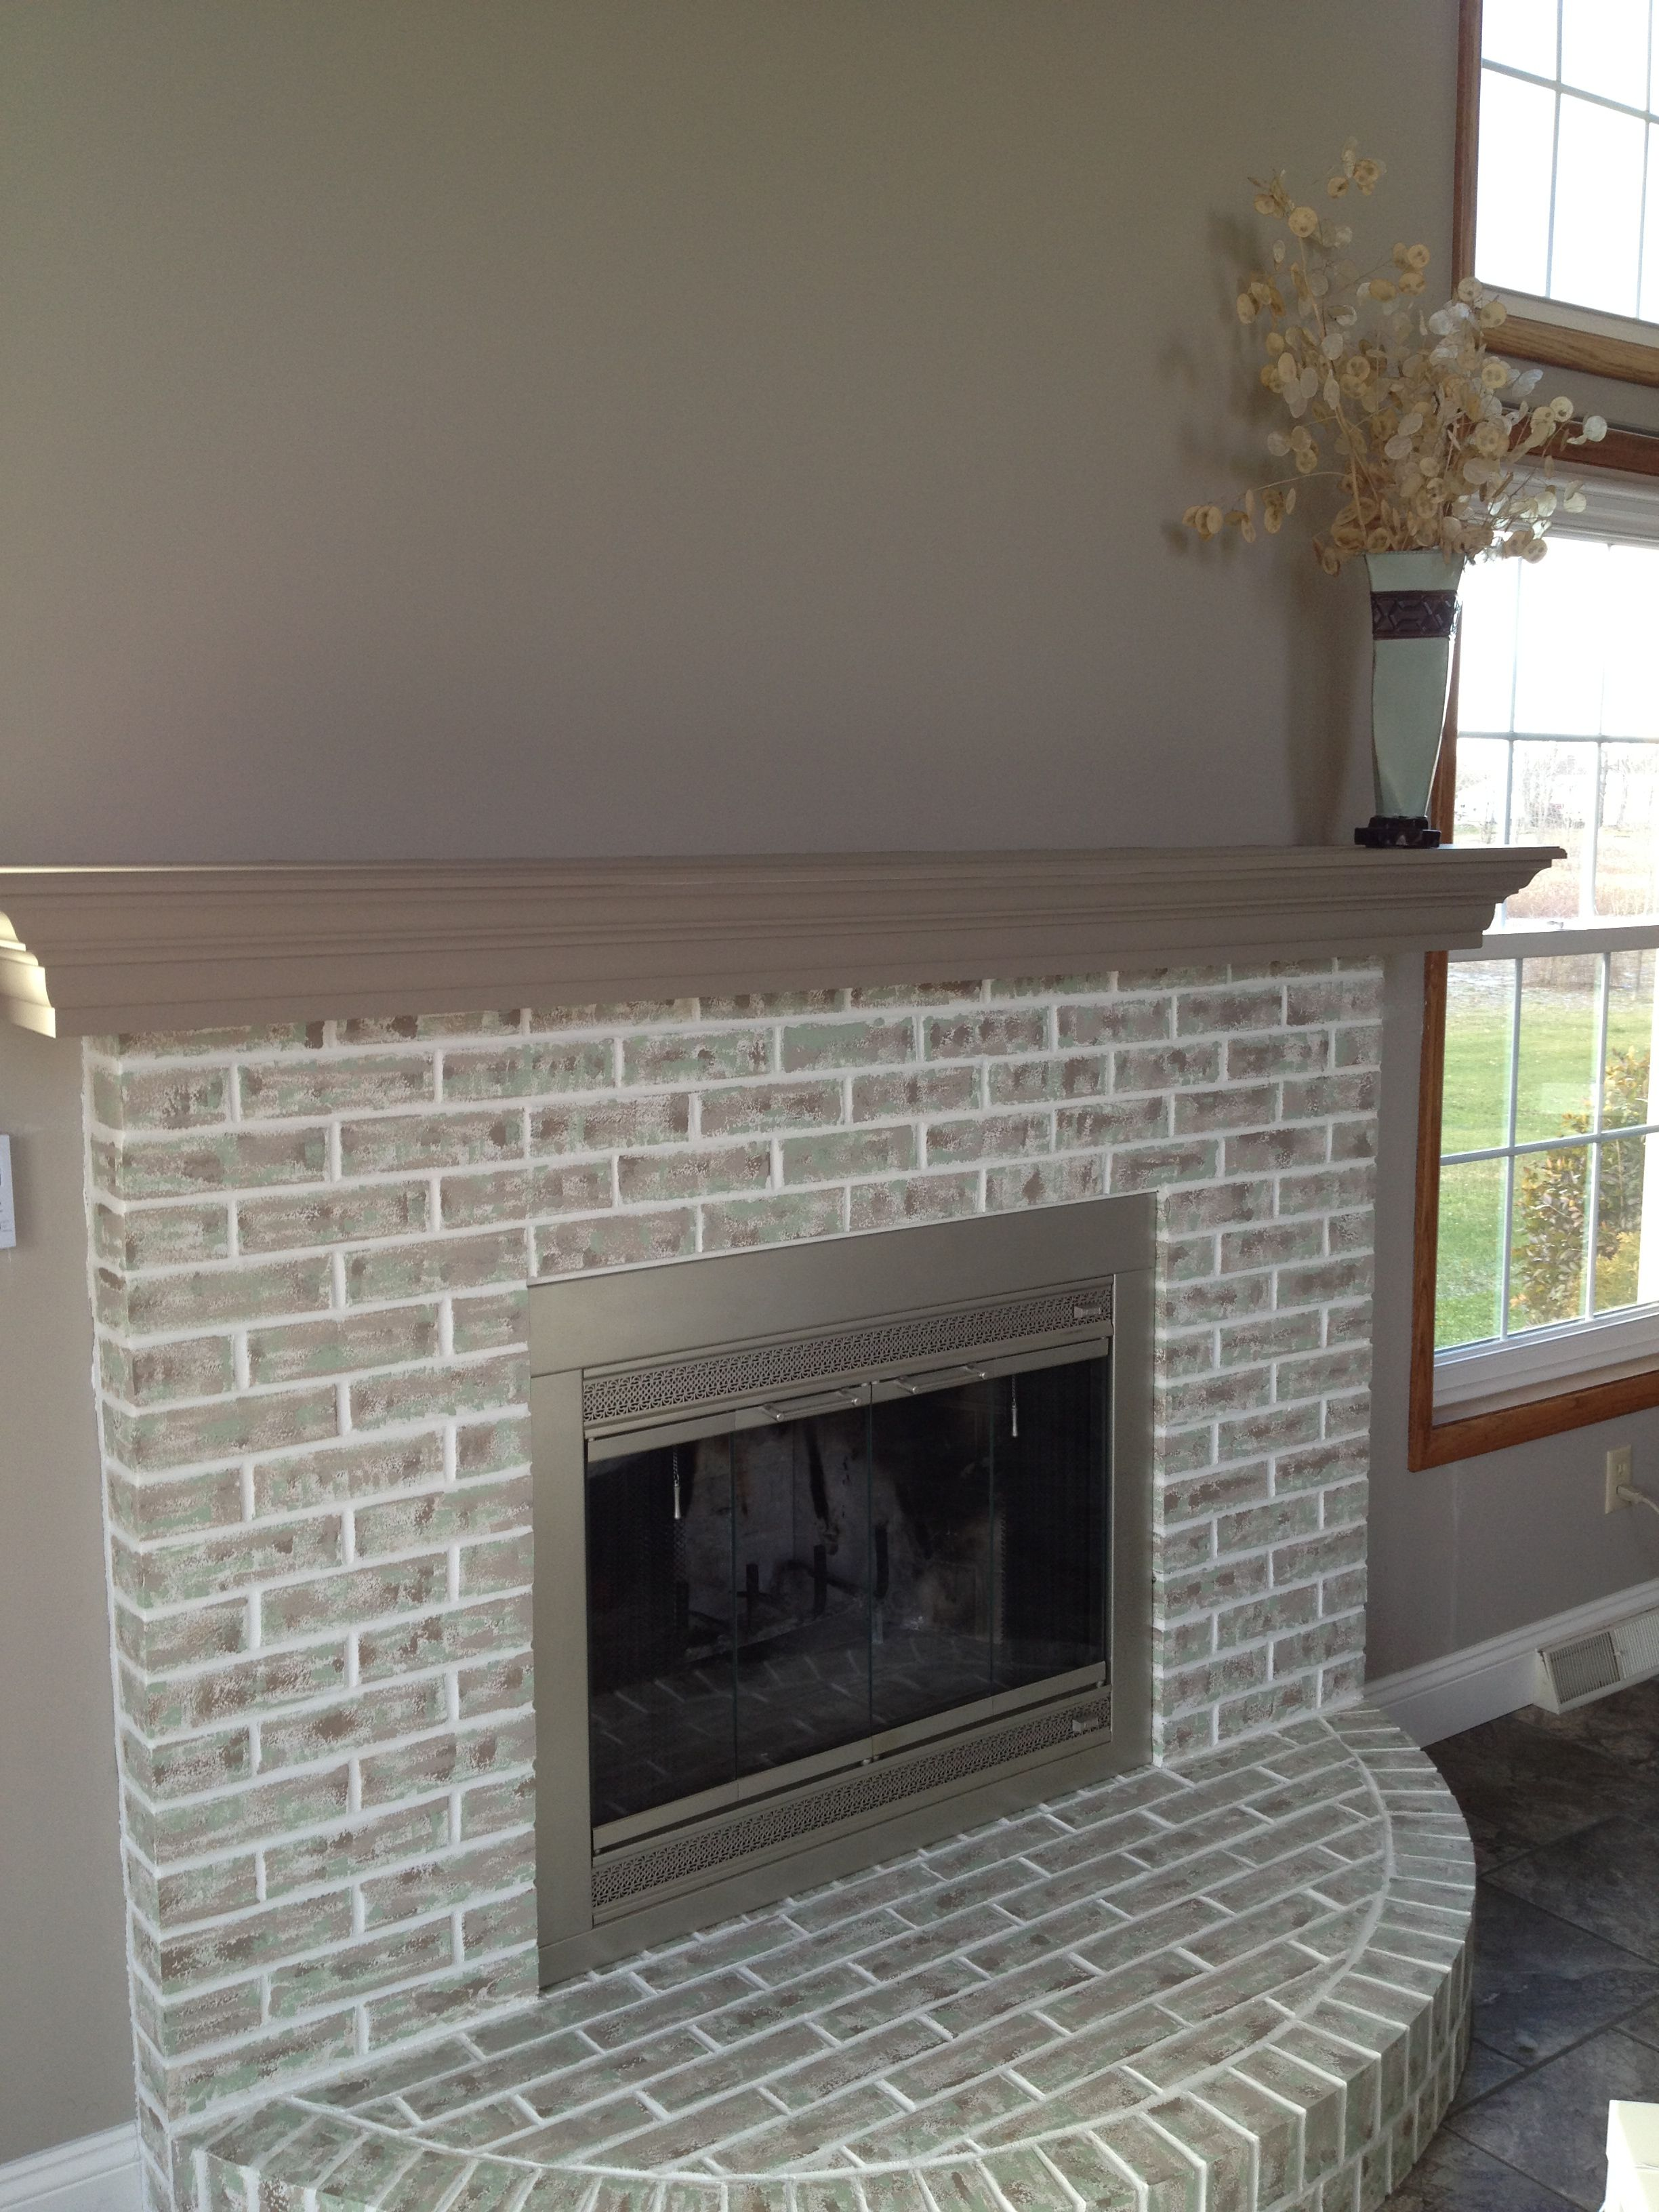 Completed Fireplace Painted Over Red Brick Brick Fireplace Makeover Red Brick Fireplaces Brick Fireplace